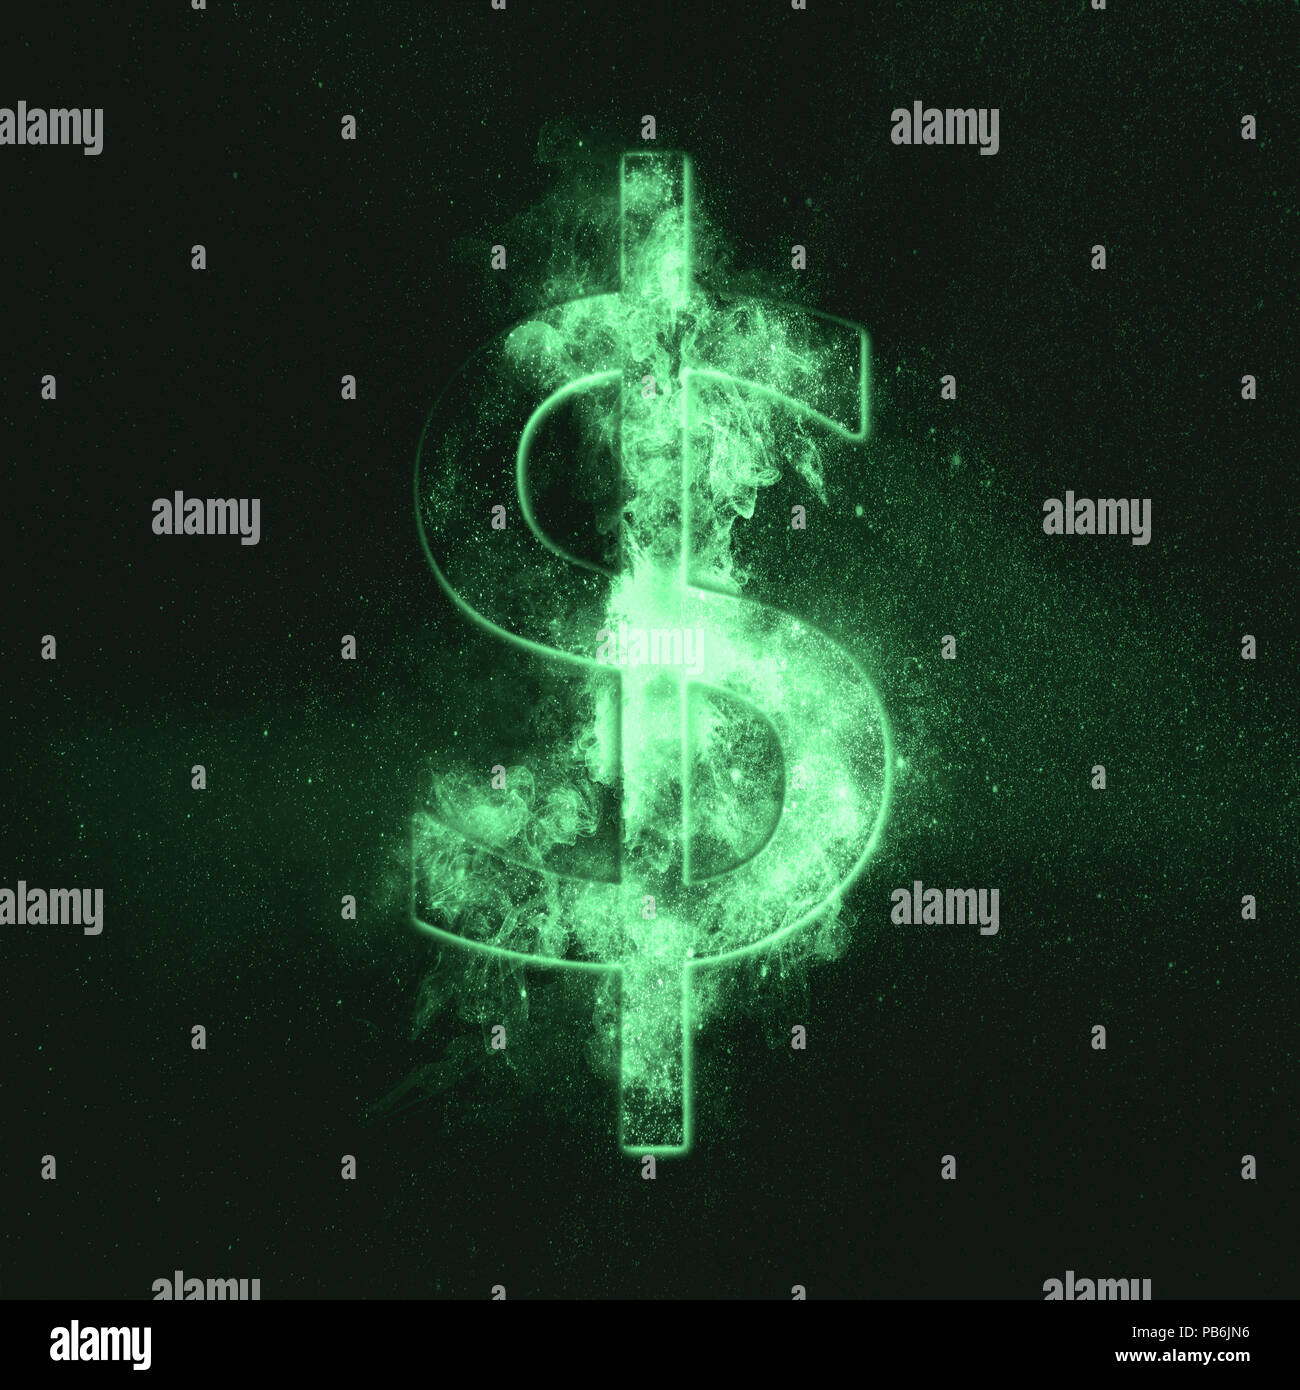 Dollar sign, Dollar Symbol. Monetary currency symbol. Green symbol - Stock Image